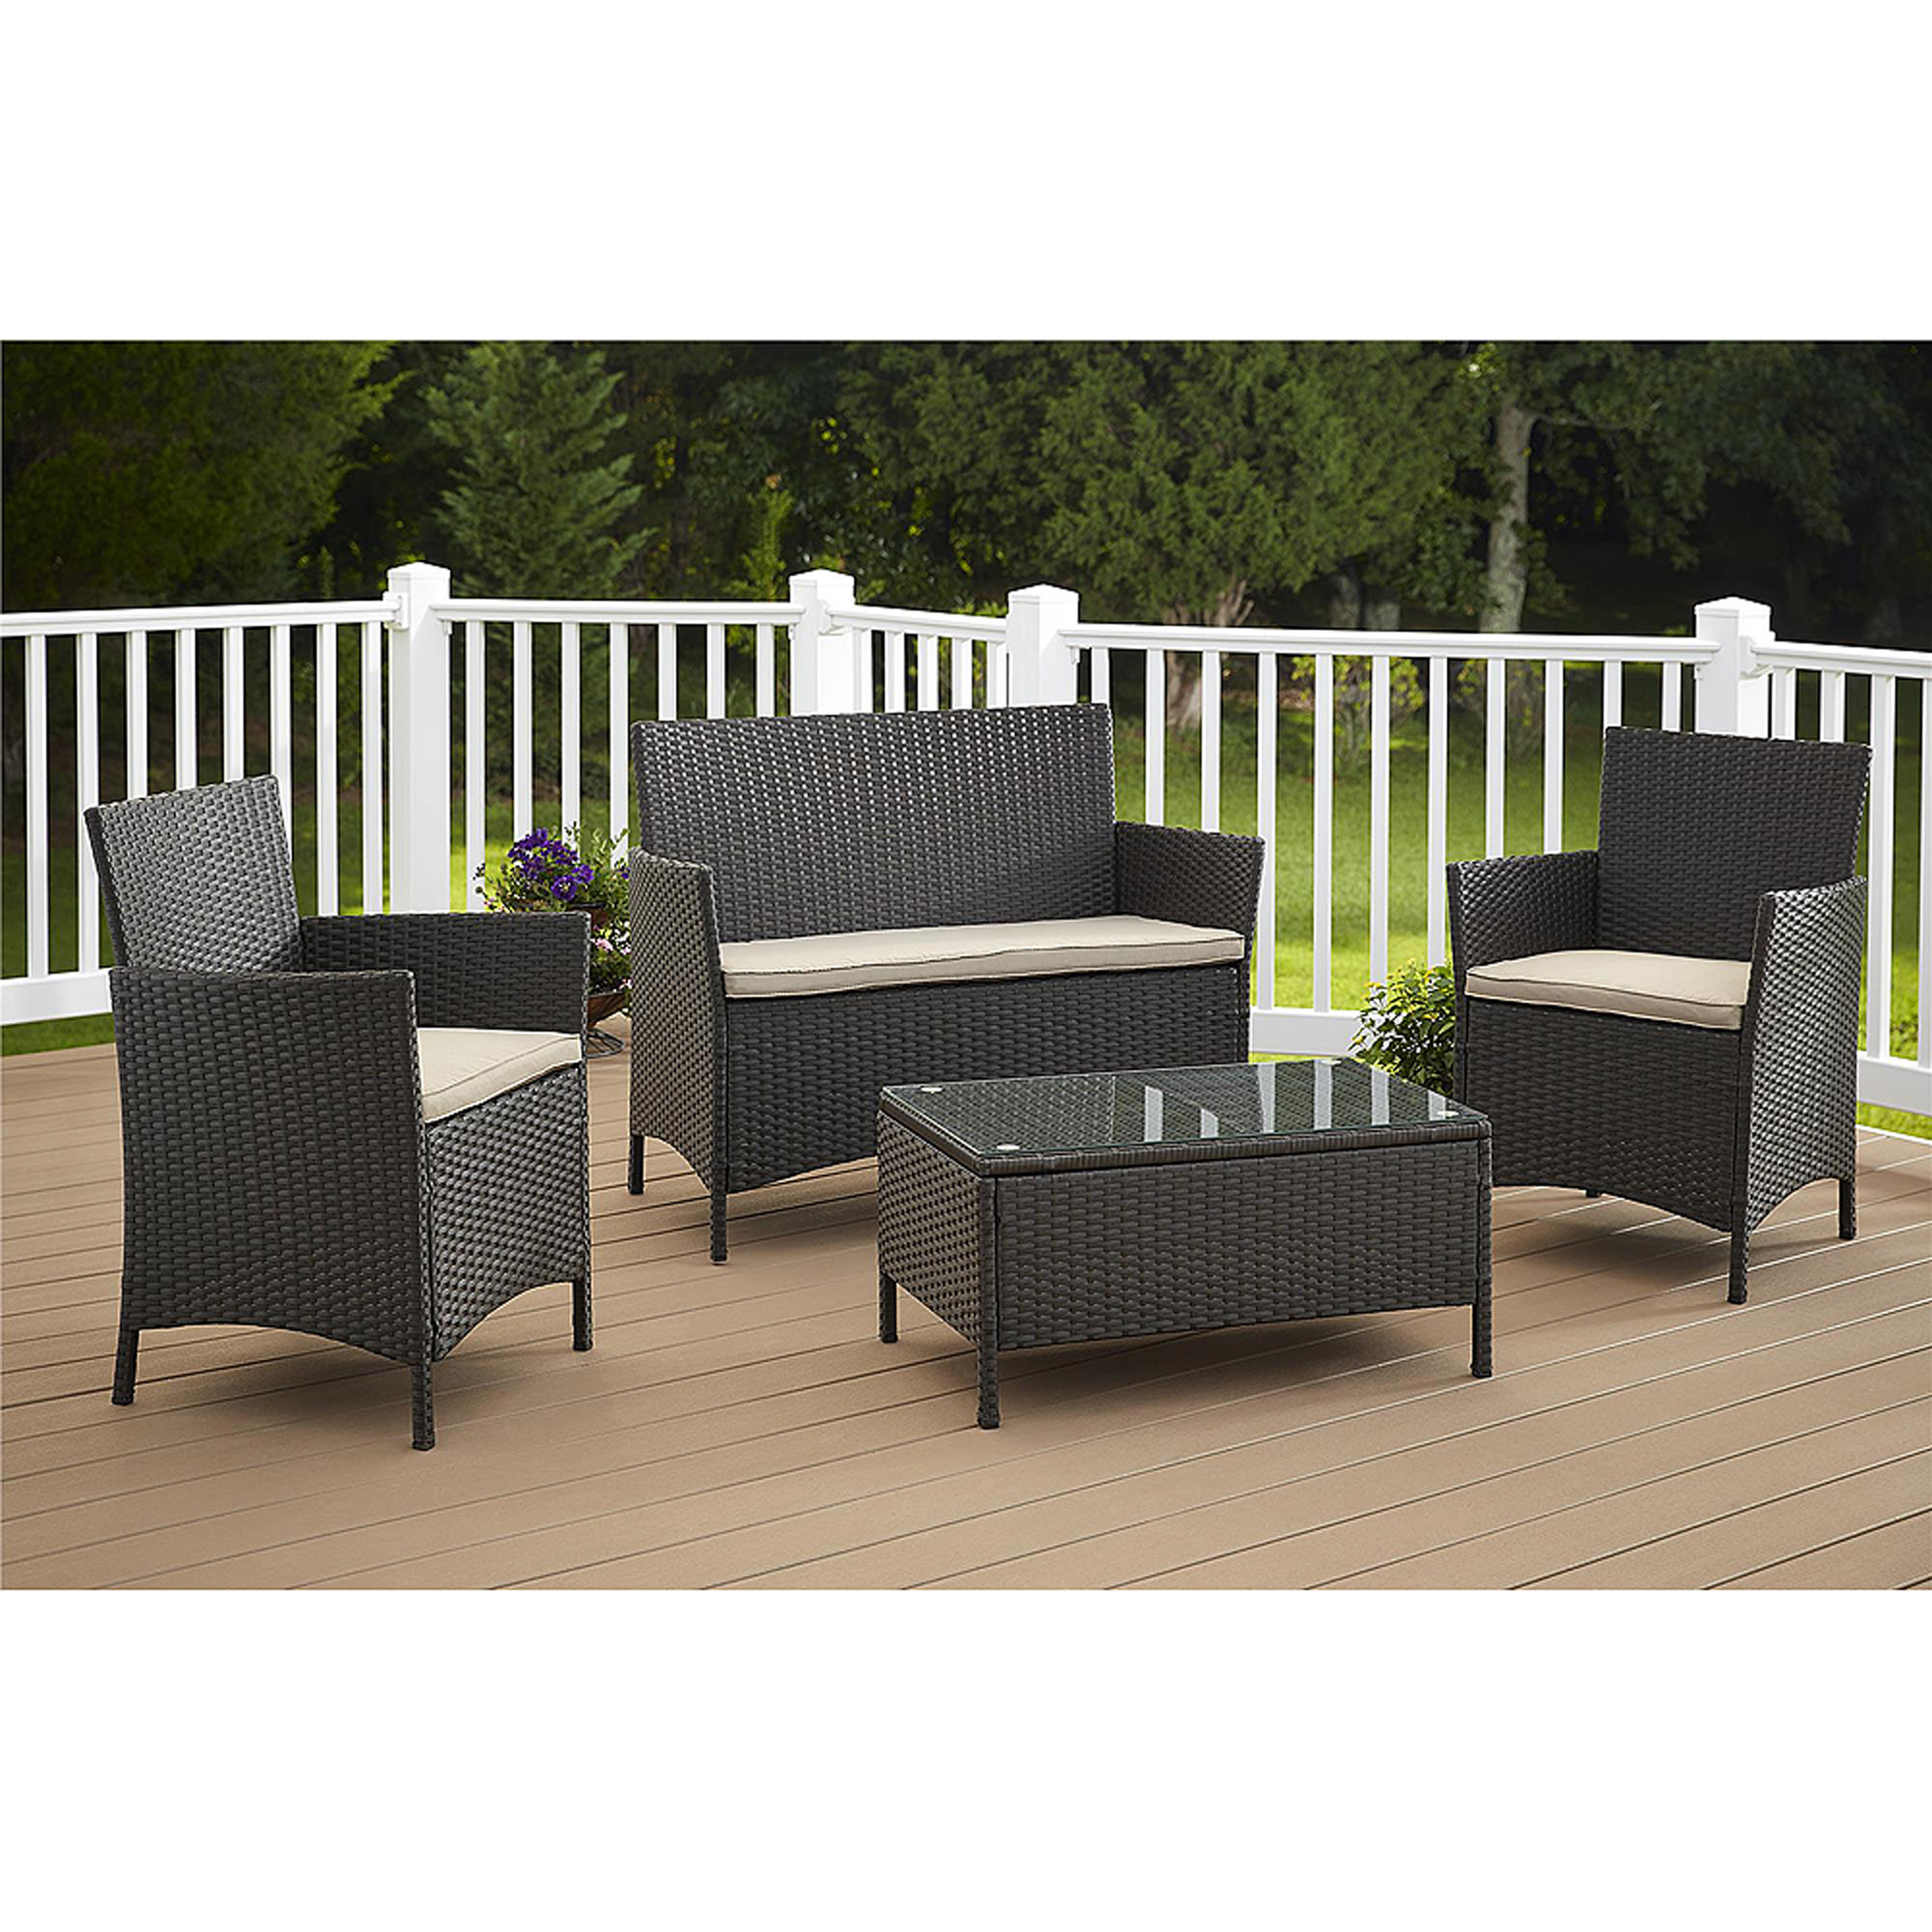 Cosco Outdoor Jamaica 4 Piece Resin Wicker Patio Conversation Set    Walmart.com